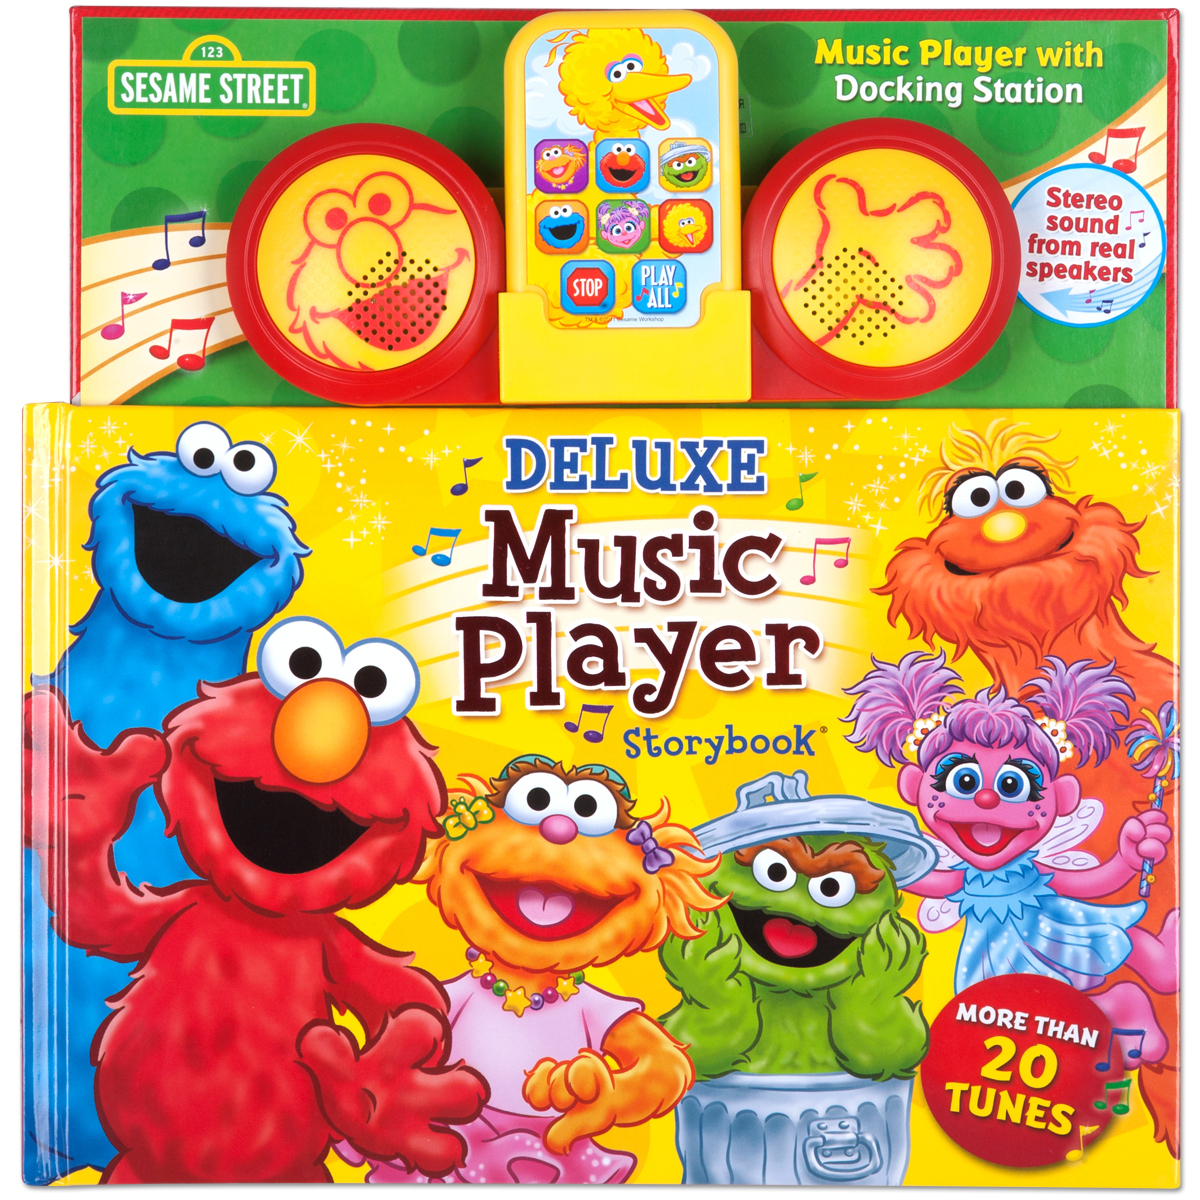 Deluxe Music Player Storybook